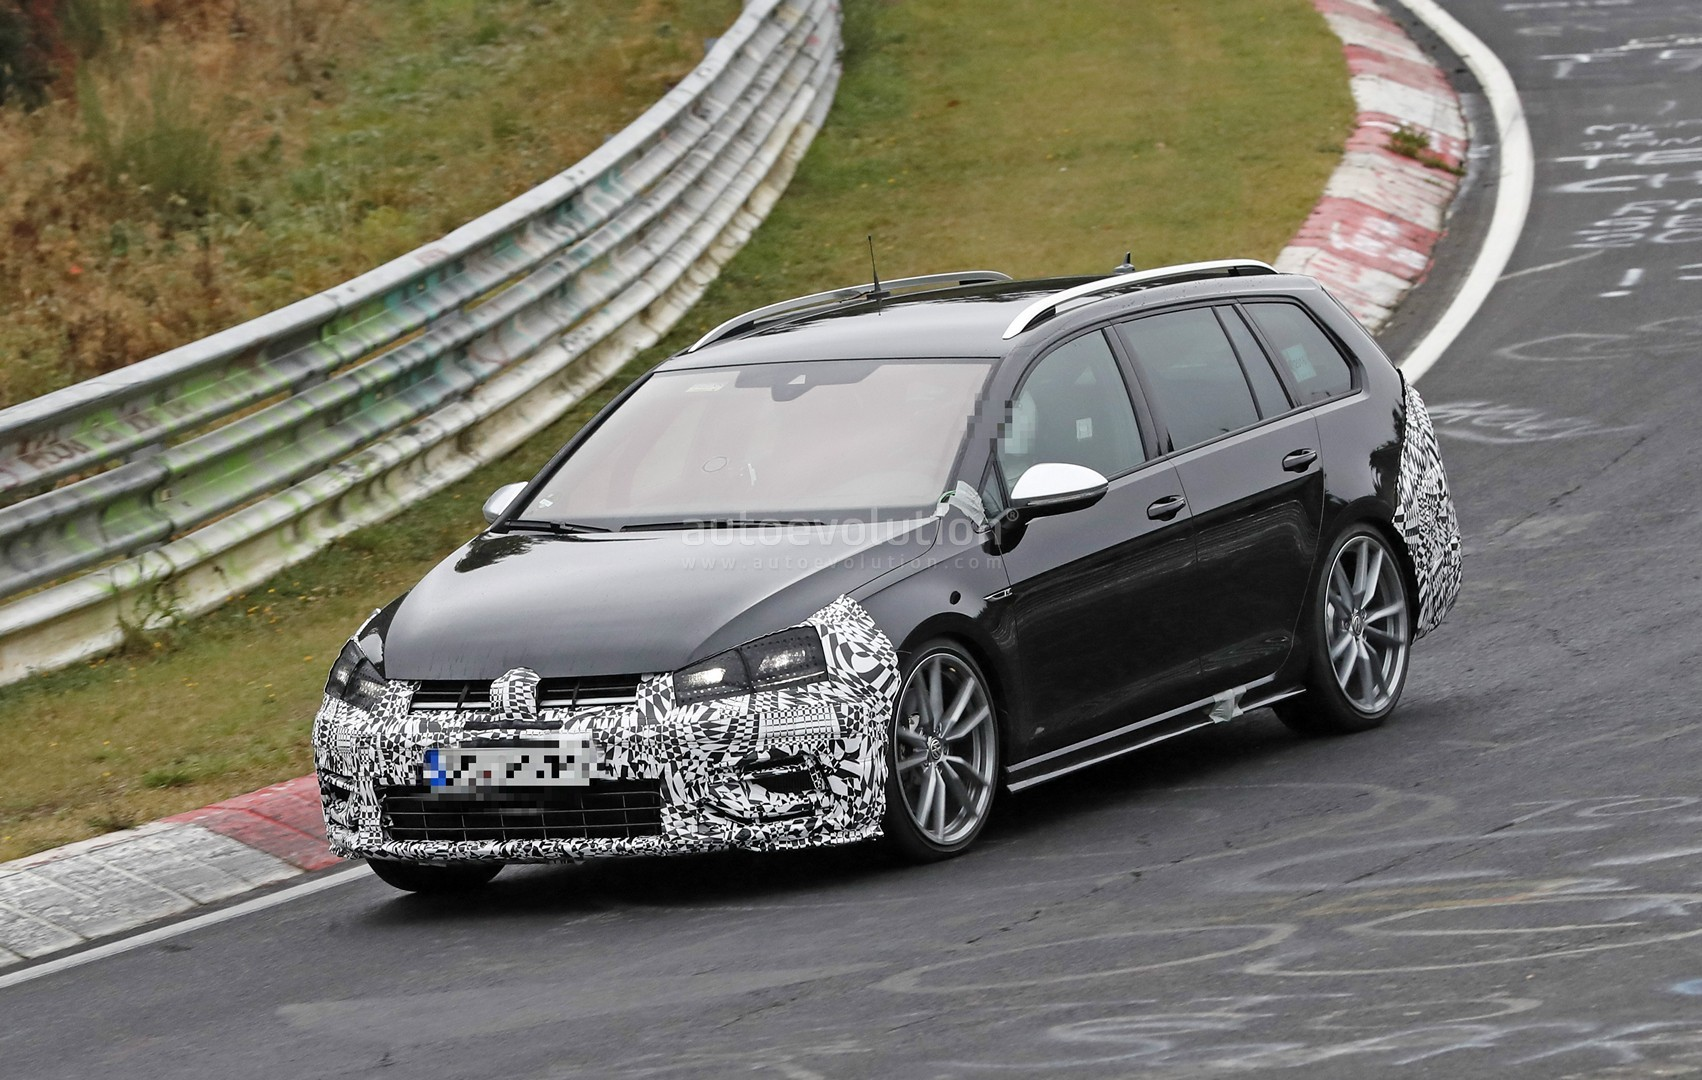 2017 golf r variant facelift makes nurburgring debut in. Black Bedroom Furniture Sets. Home Design Ideas